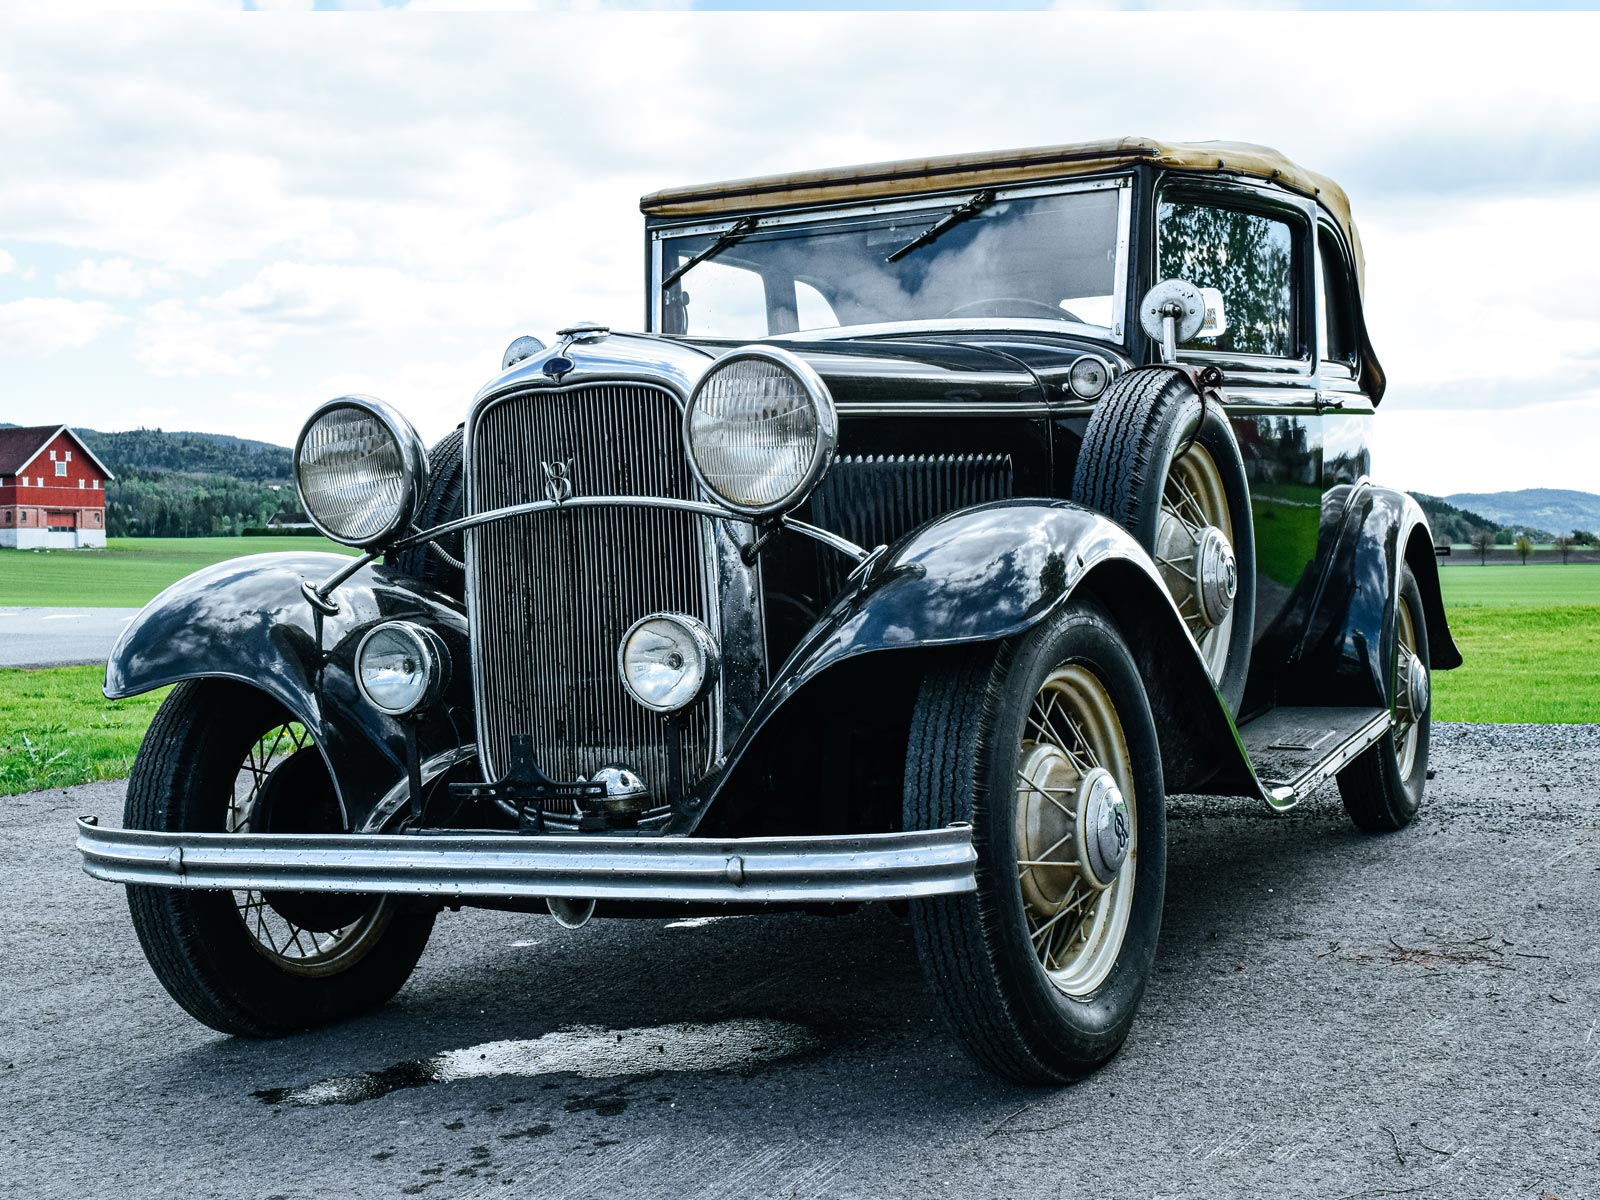 Ford B V8 Convertible 1932 modell.